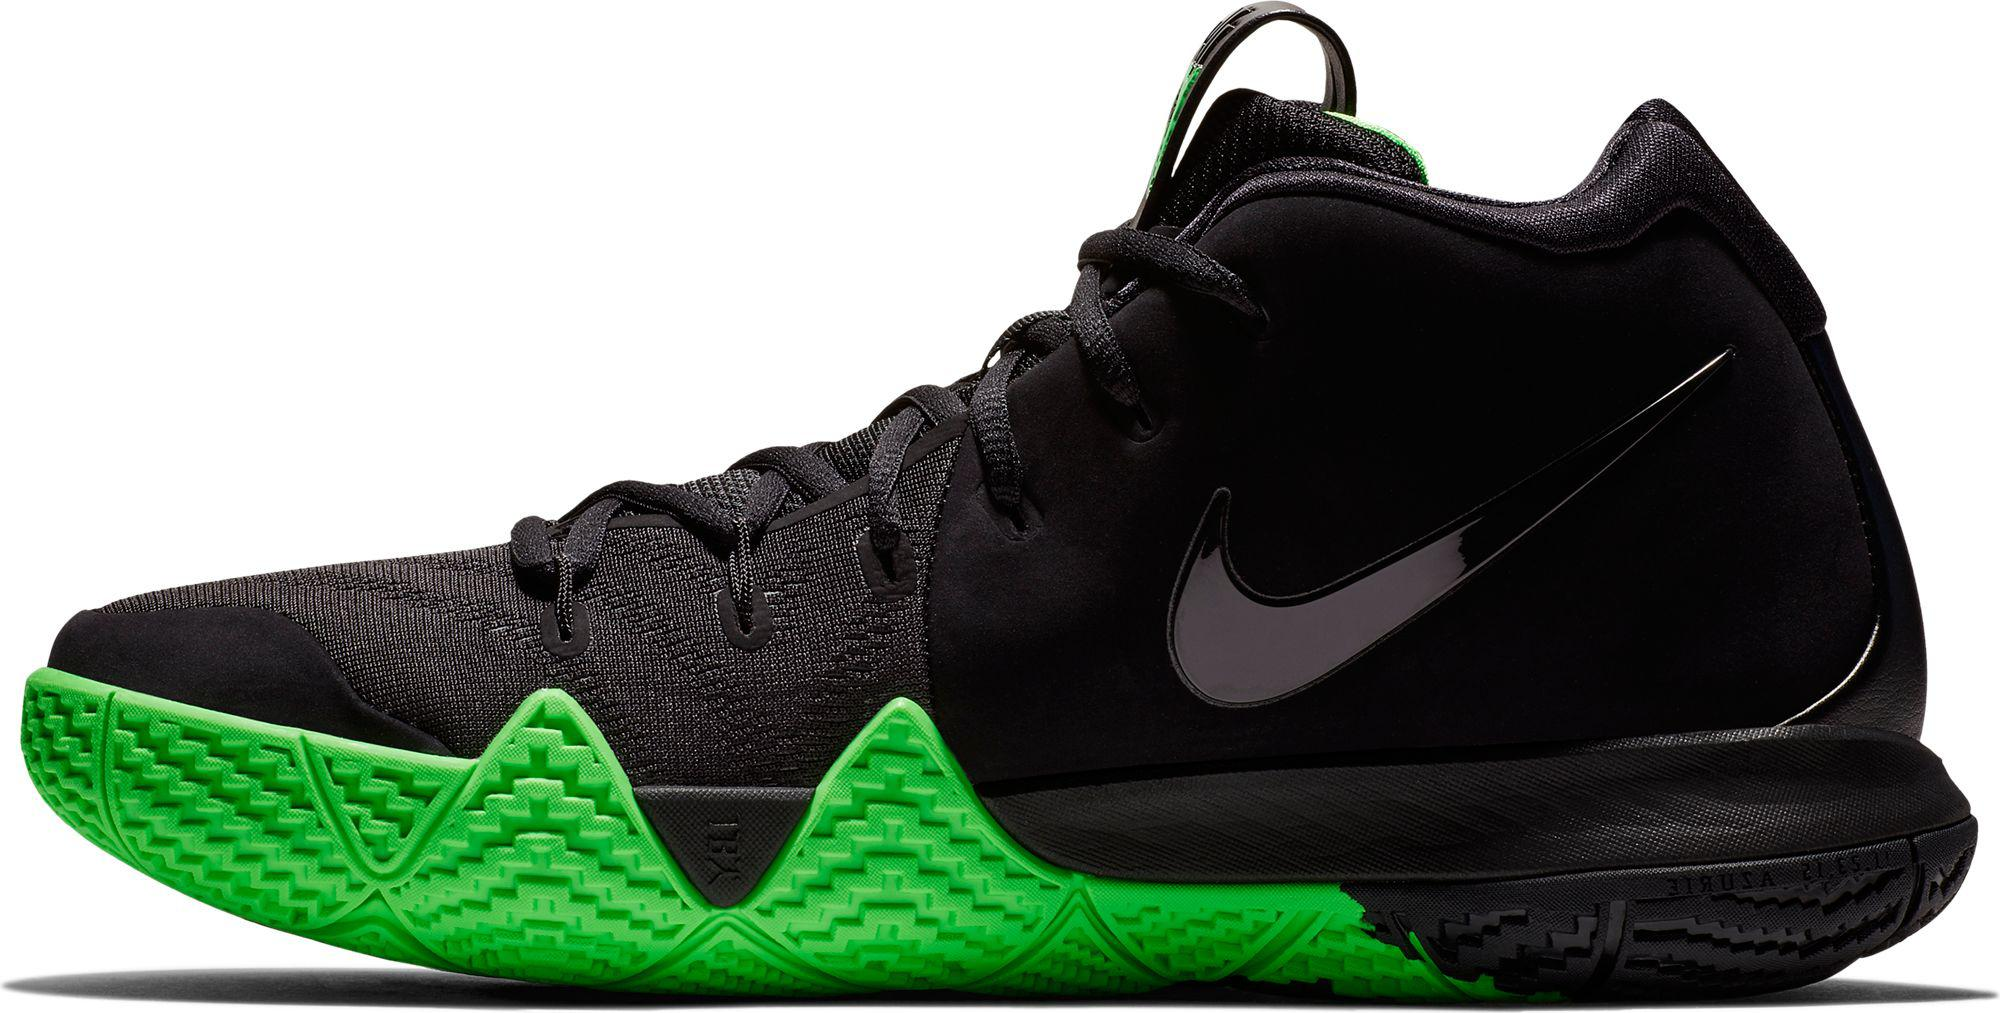 new styles 976fc c6db8 Nike - Green Kyrie 4 Basketball Shoes for Men - Lyst